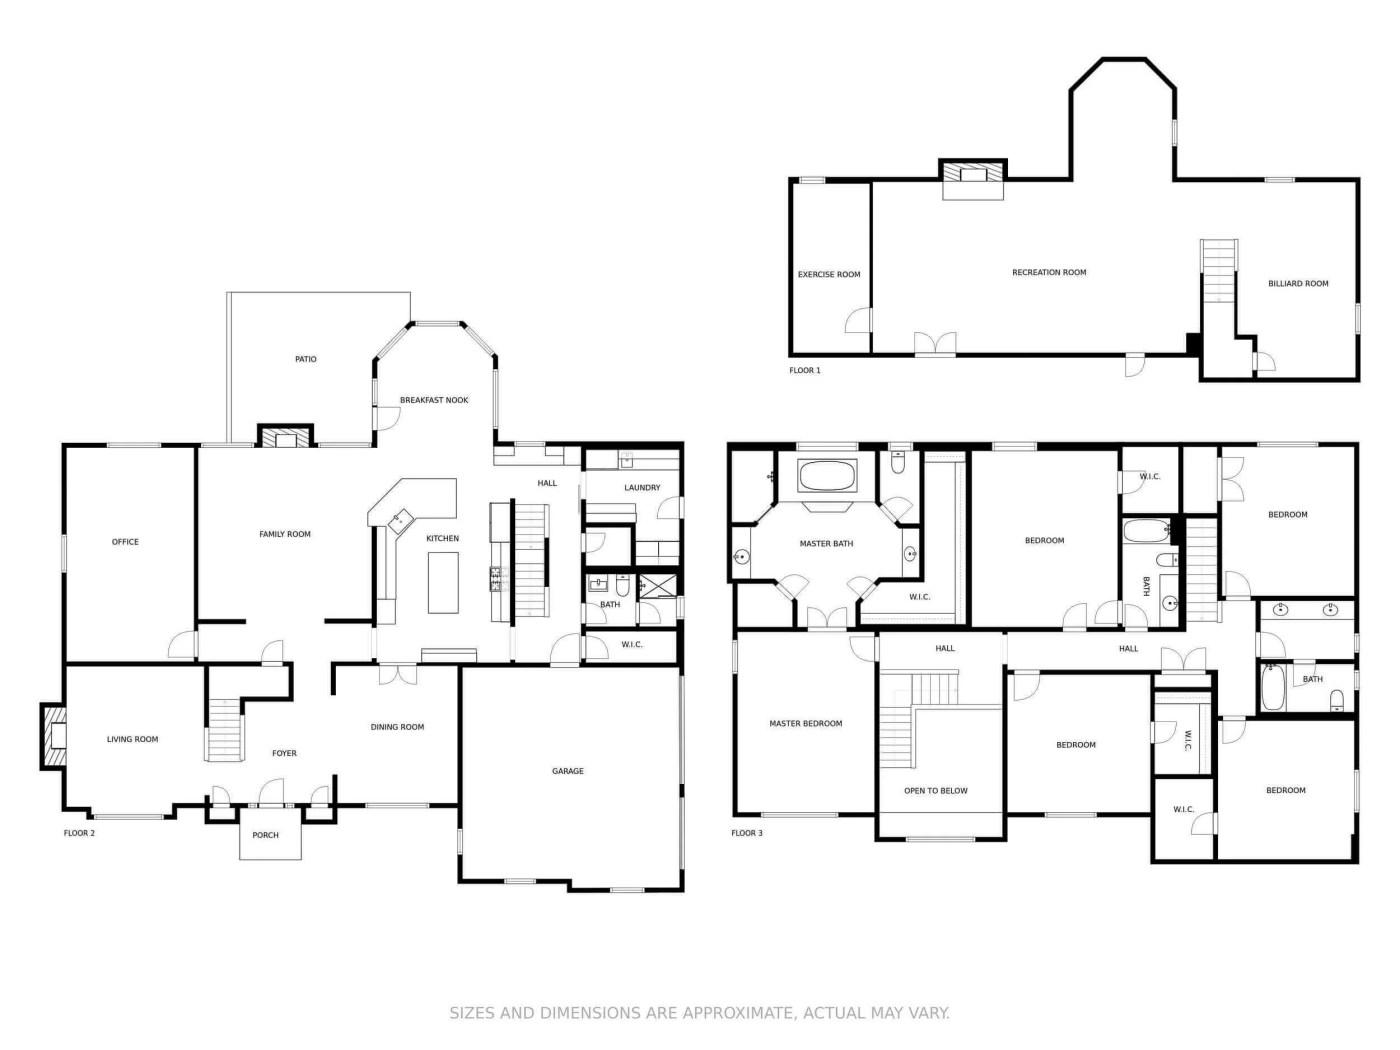 Example of a floor plan services for a real estate agents